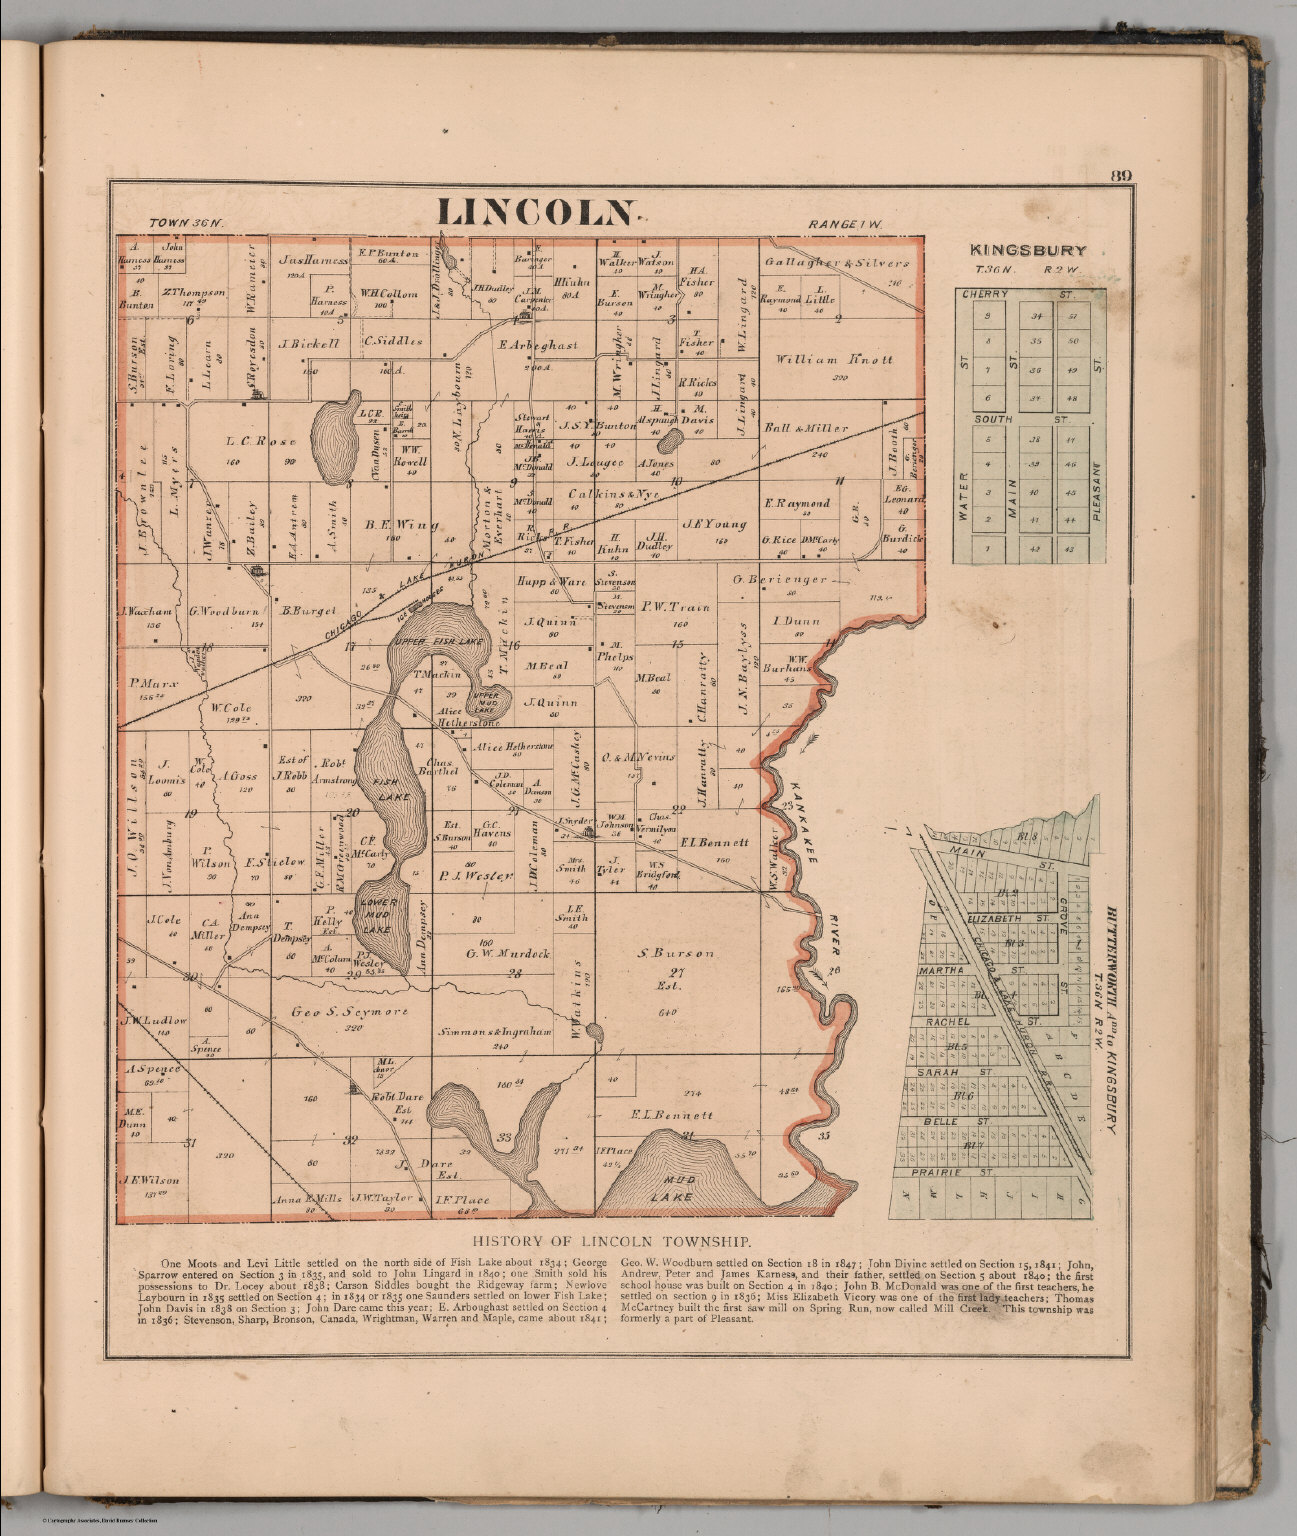 La Porte County Indiana Map.Lincoln Township Laporte County Indiana David Rumsey Historical